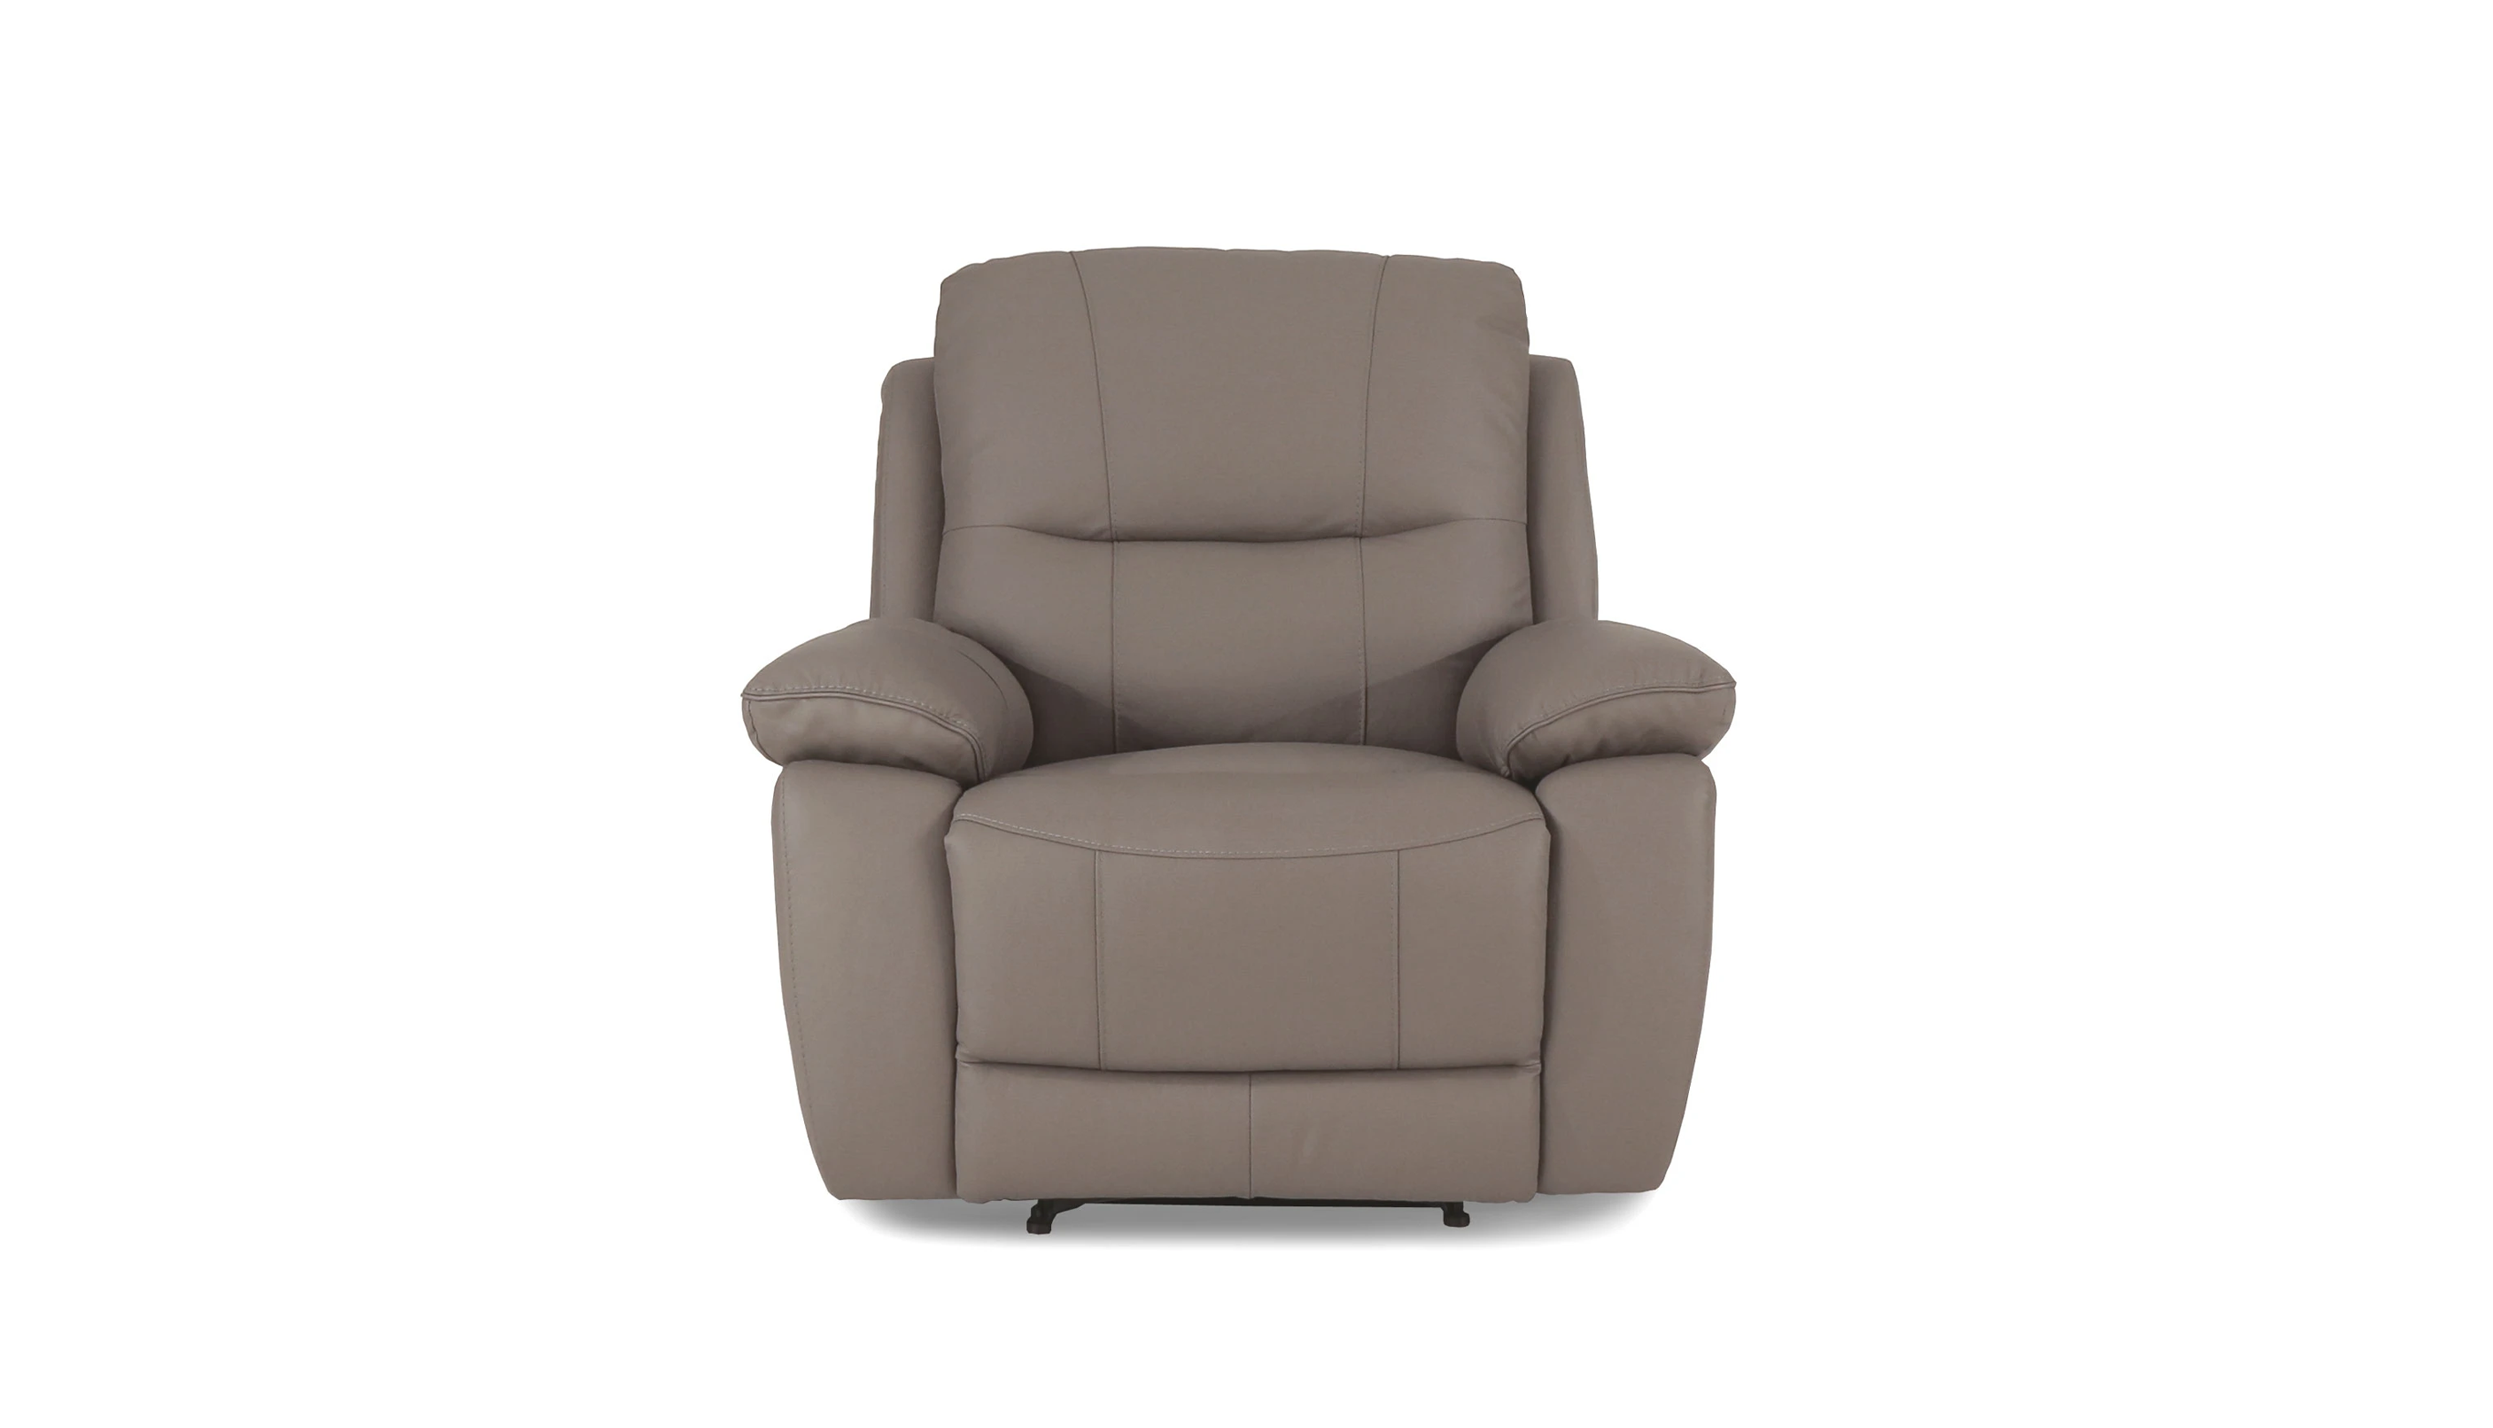 Tivoli Power Recliner Chair in Light Grey